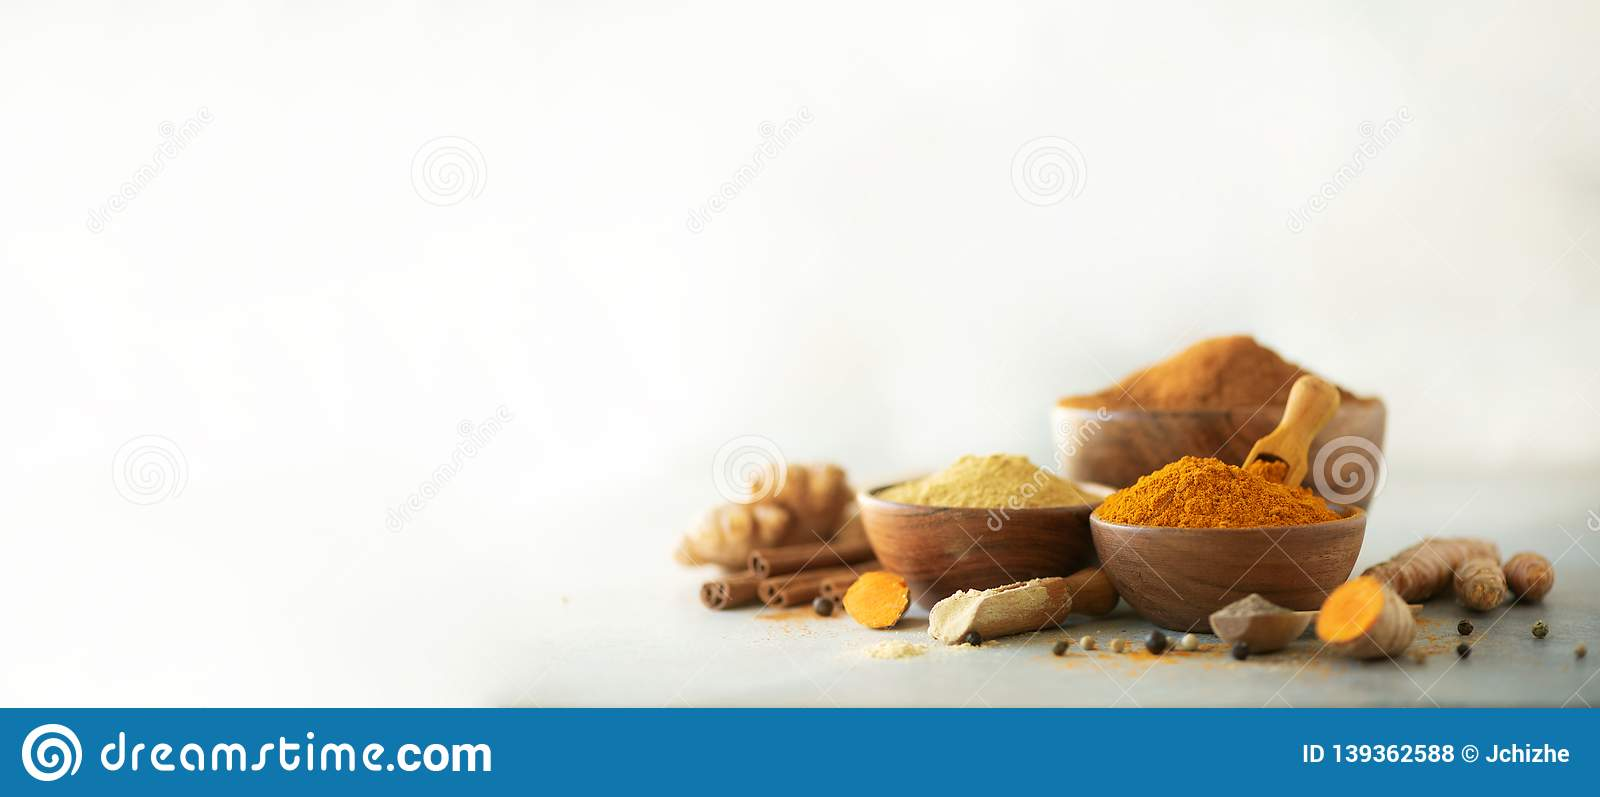 Ingredients for hot ayurvedic drink. Turmeric powder, curcuma root, cinnamon, ginger, lemon over grey background. Copy space,